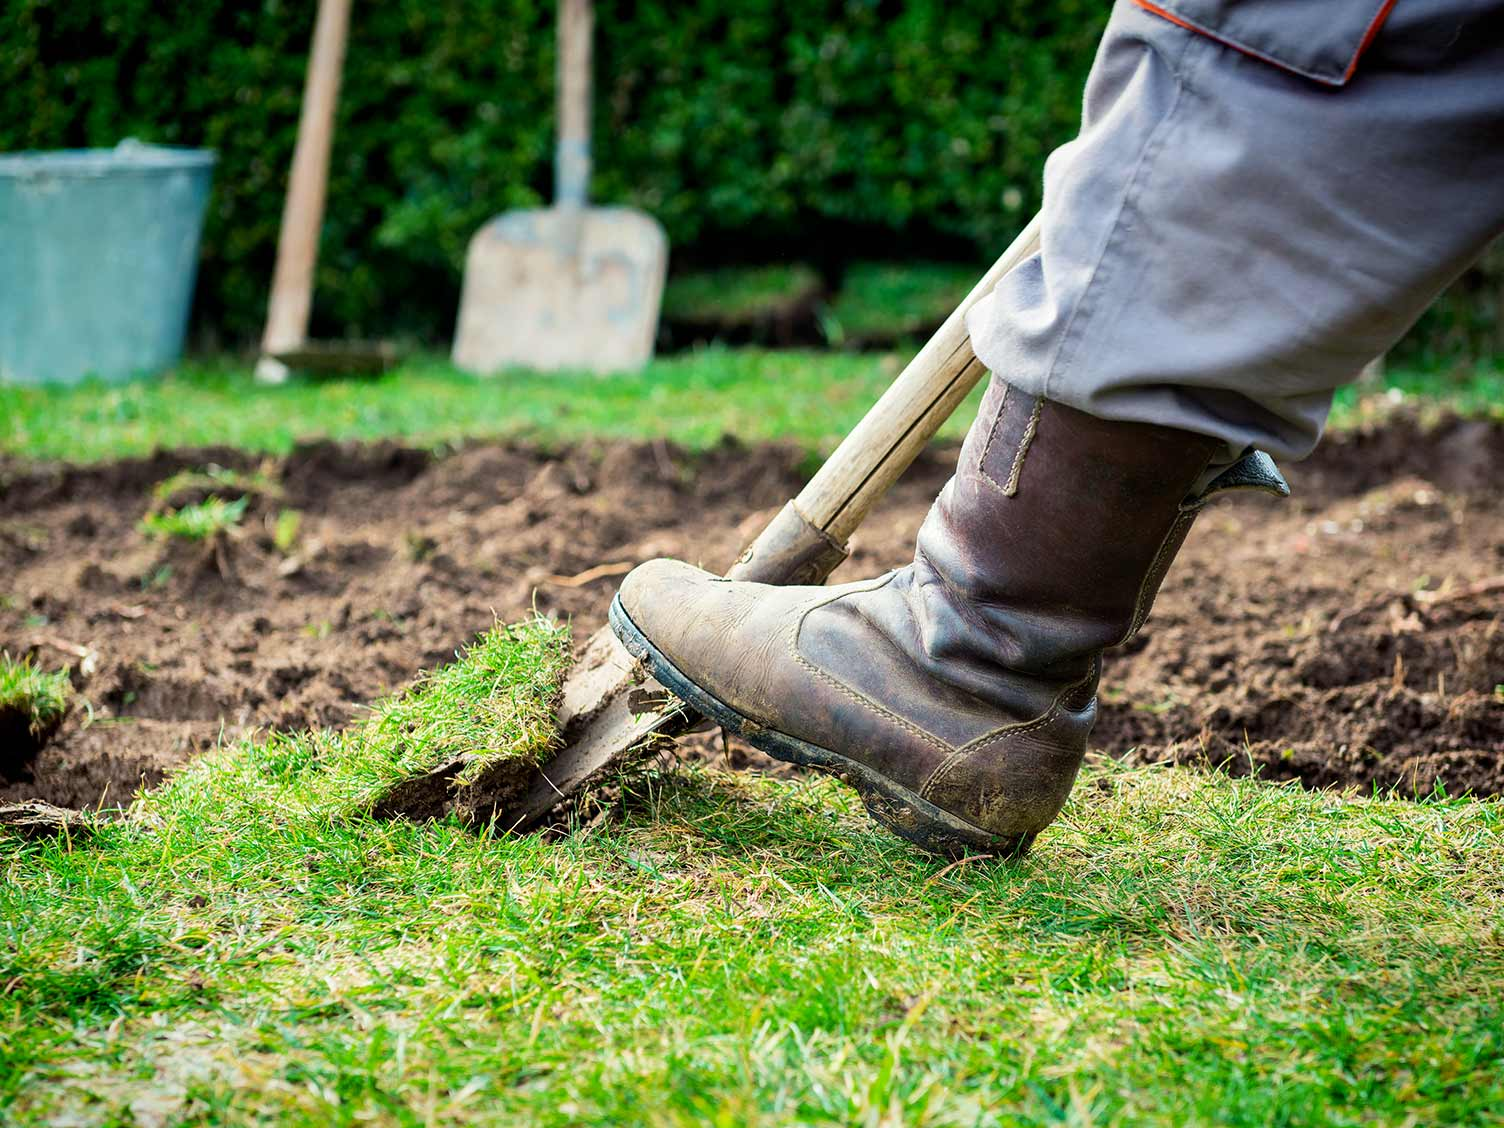 Complete guide to levelling a lawn | lovethegarden